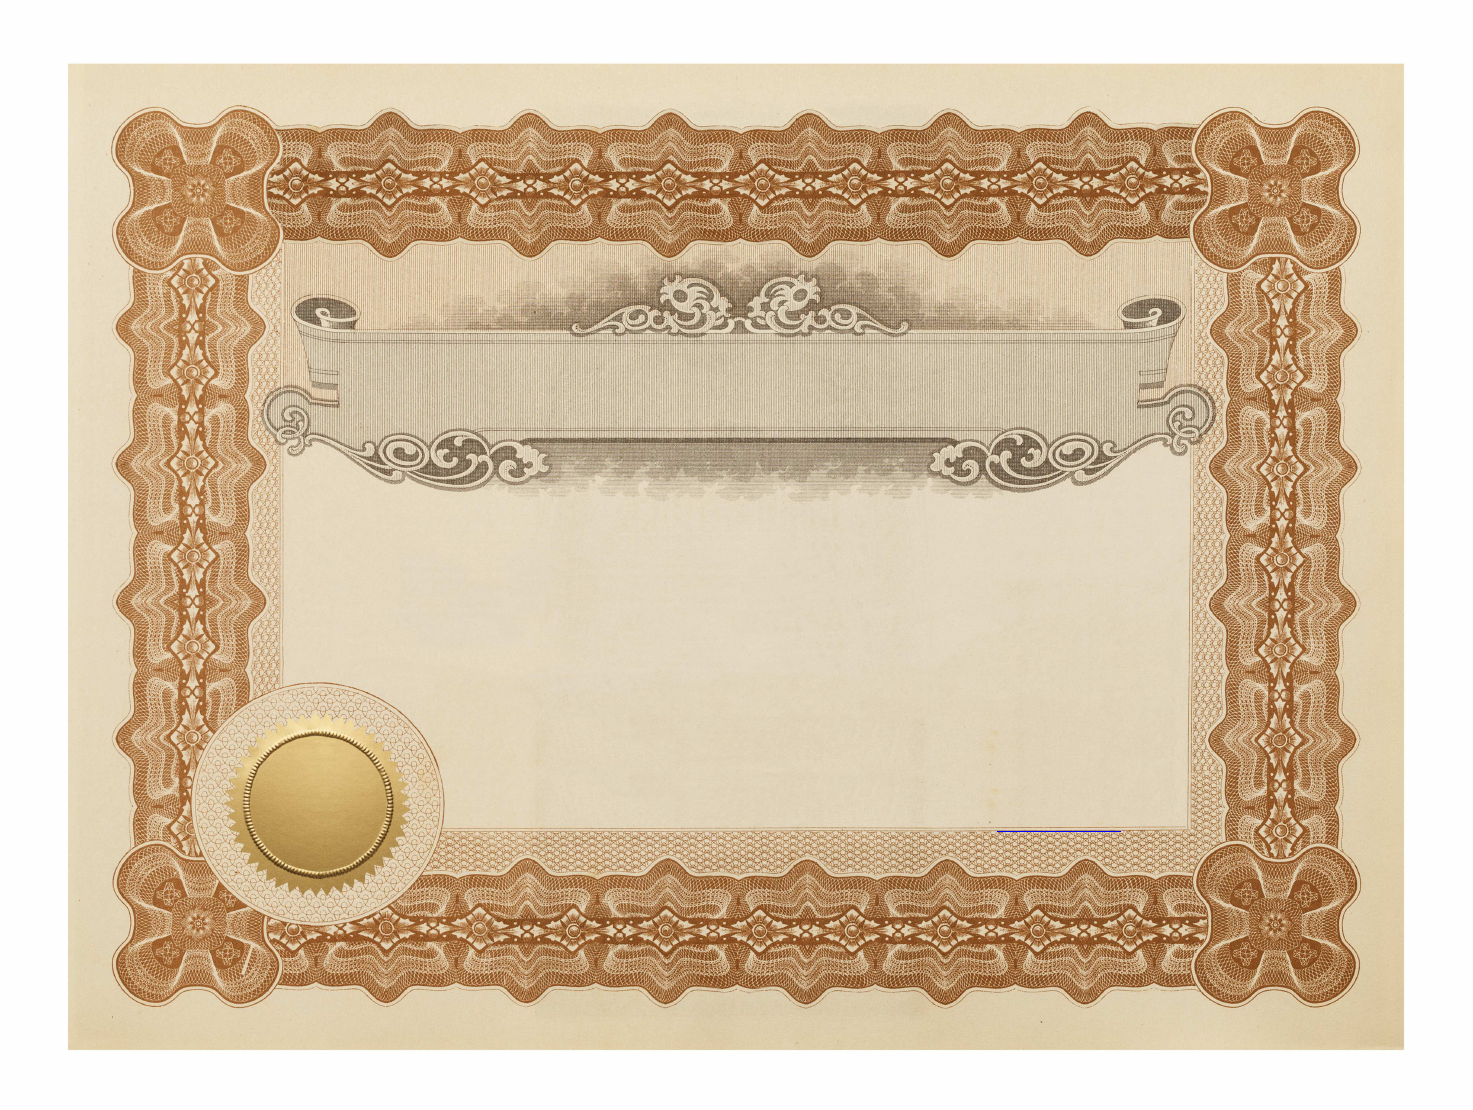 Download Free Common Stock Certificate Template Download For Free